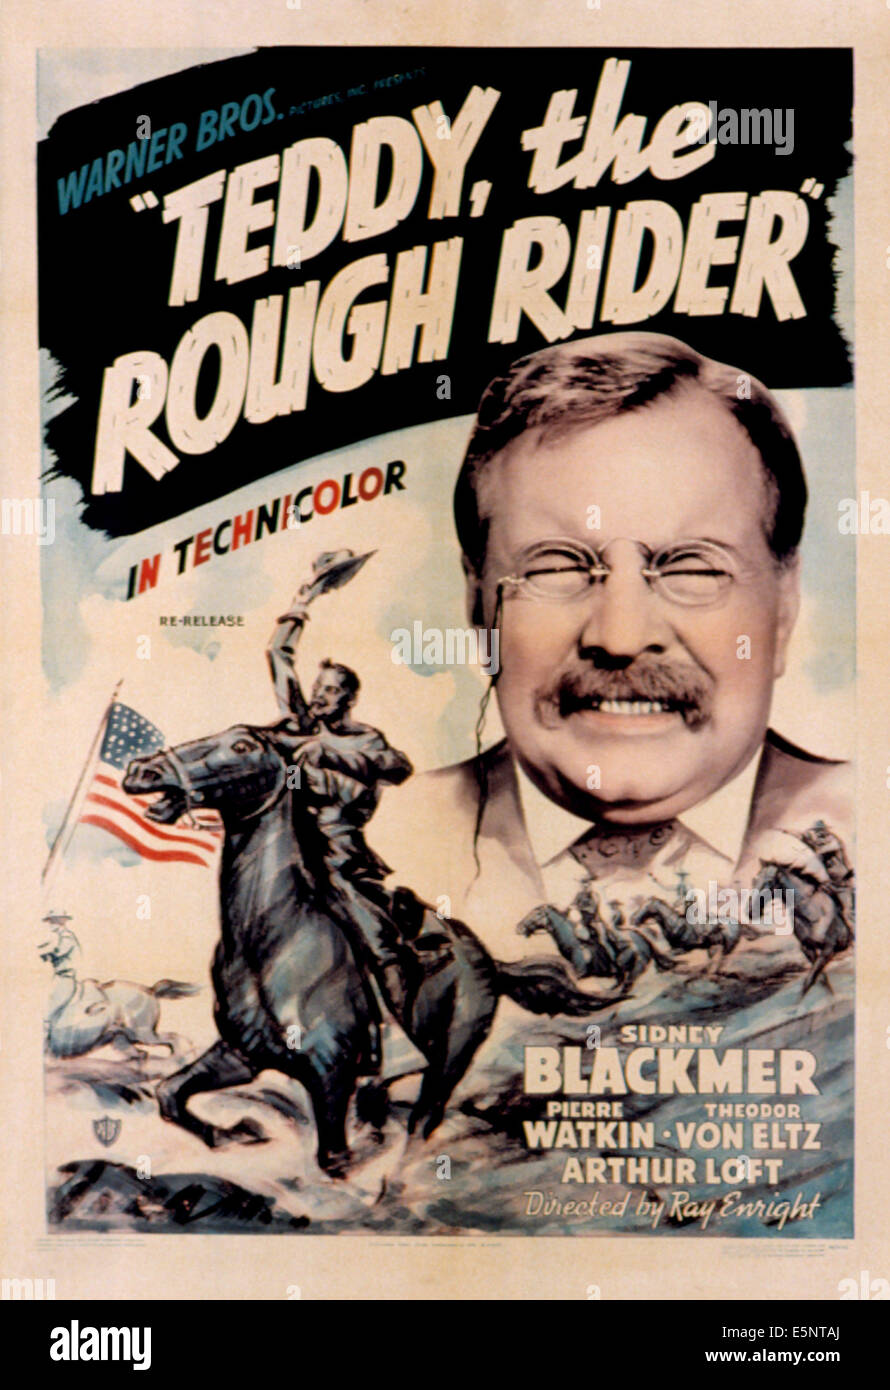 pince nez stock photos pince nez stock images alamy teddy the rough rider sidney blackmer 1940 stock image